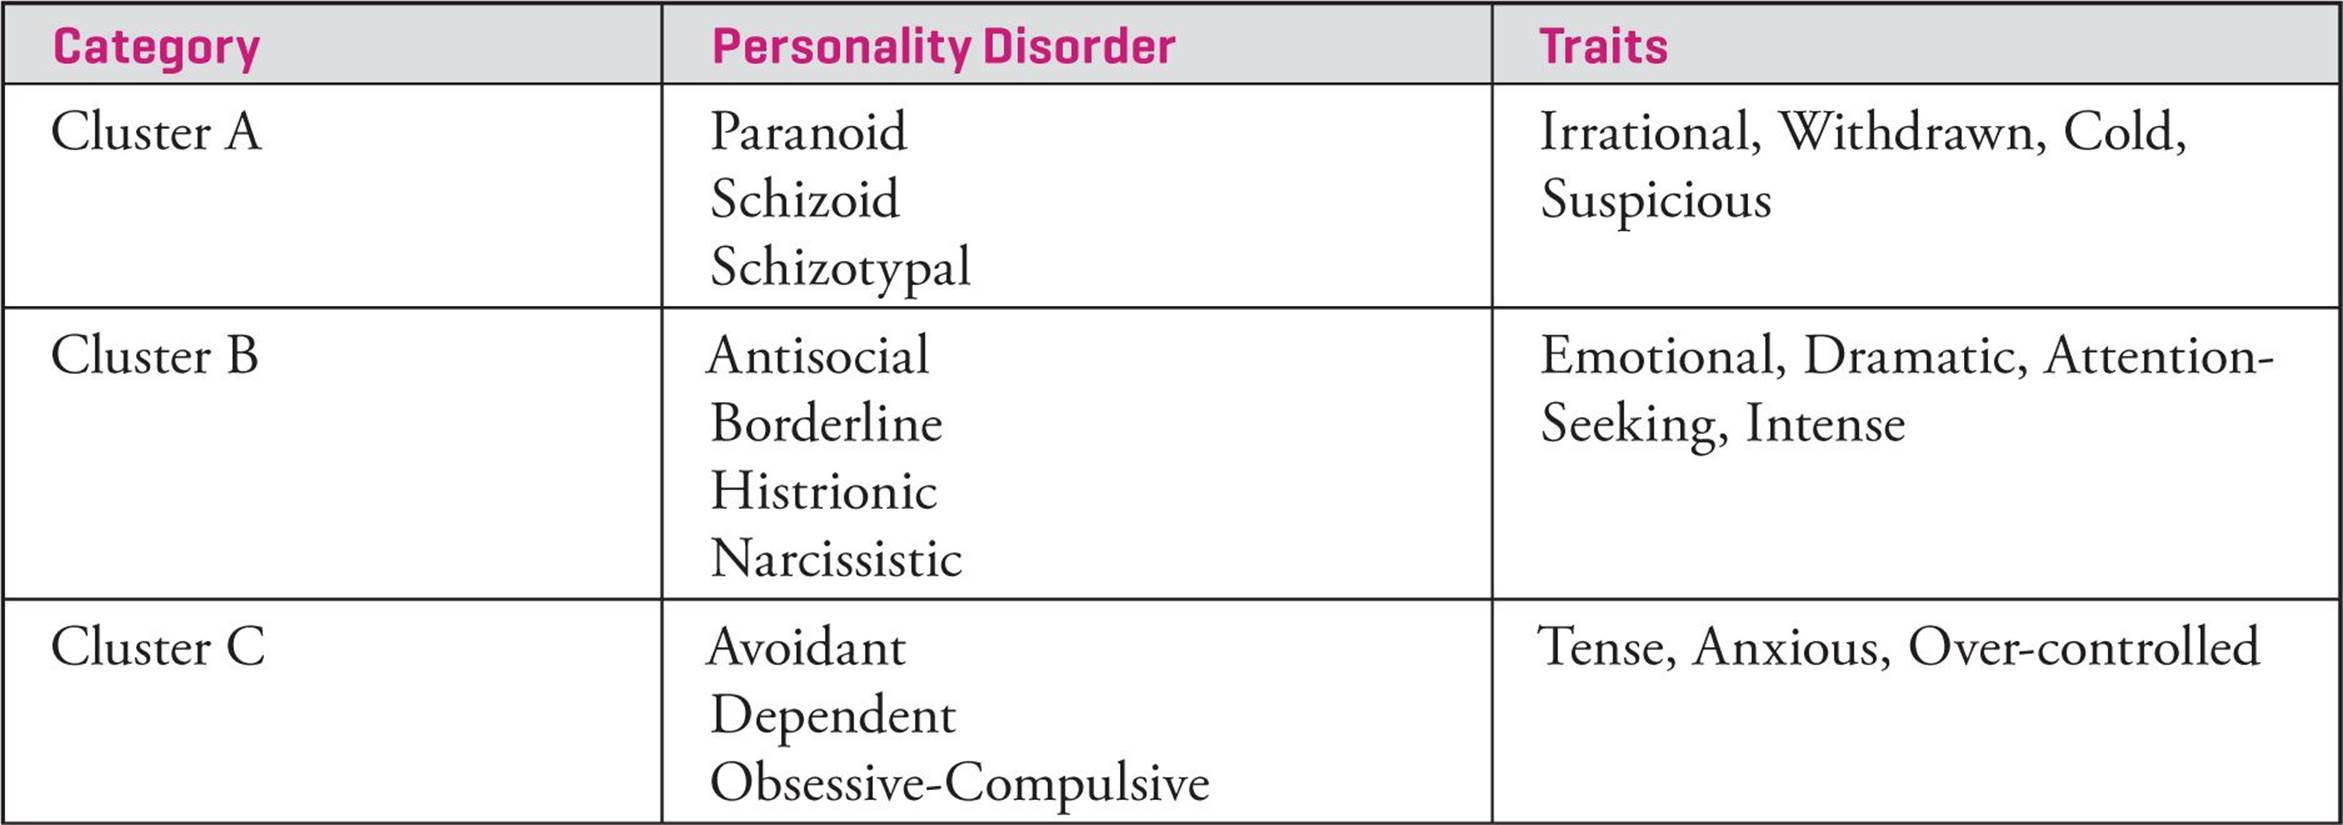 personality disorders cluster b Cluster b disorders include antisocial personality disorder, histrionic personality disorder, narcissistic personality disorder, and borderline personality disorder people with these disorders usually are impulsive, overly dramatic, highly emotional, and erratic.